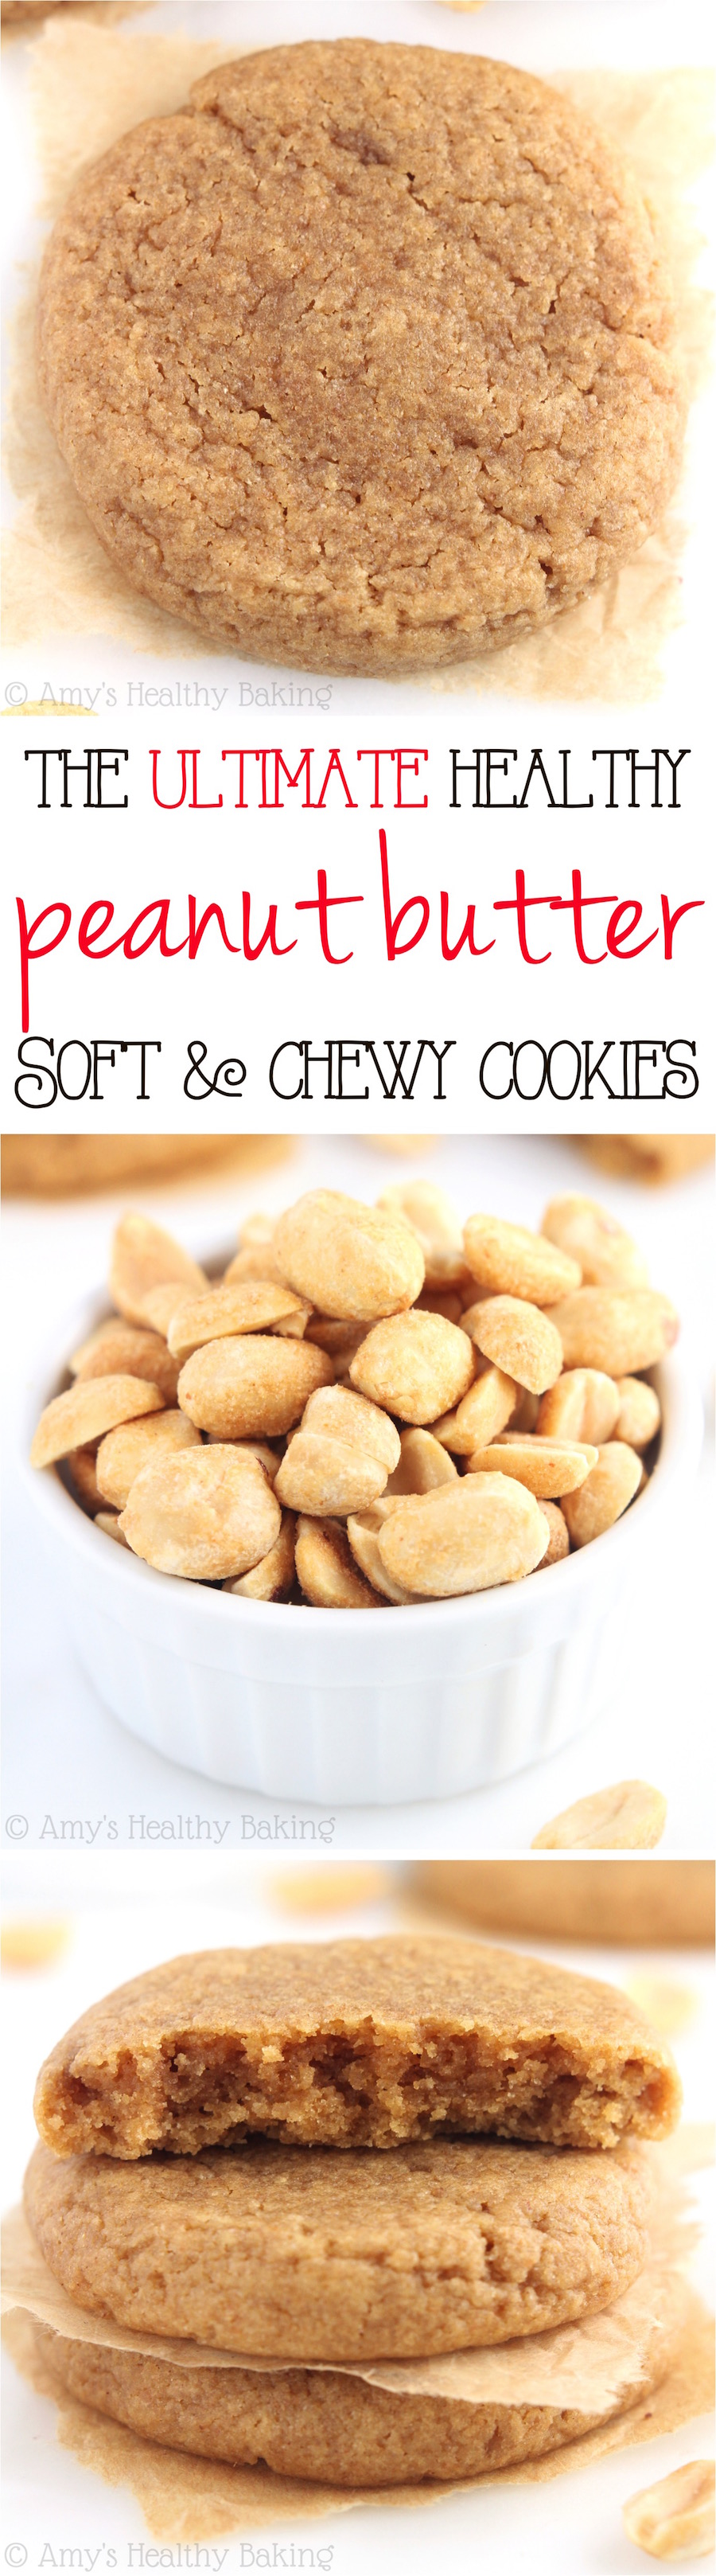 The ULTIMATE Soft & Chewy Peanut Butter Cookies -- these skinny cookies don't taste healthy at all! You'll never need another peanut butter cookie recipe again!